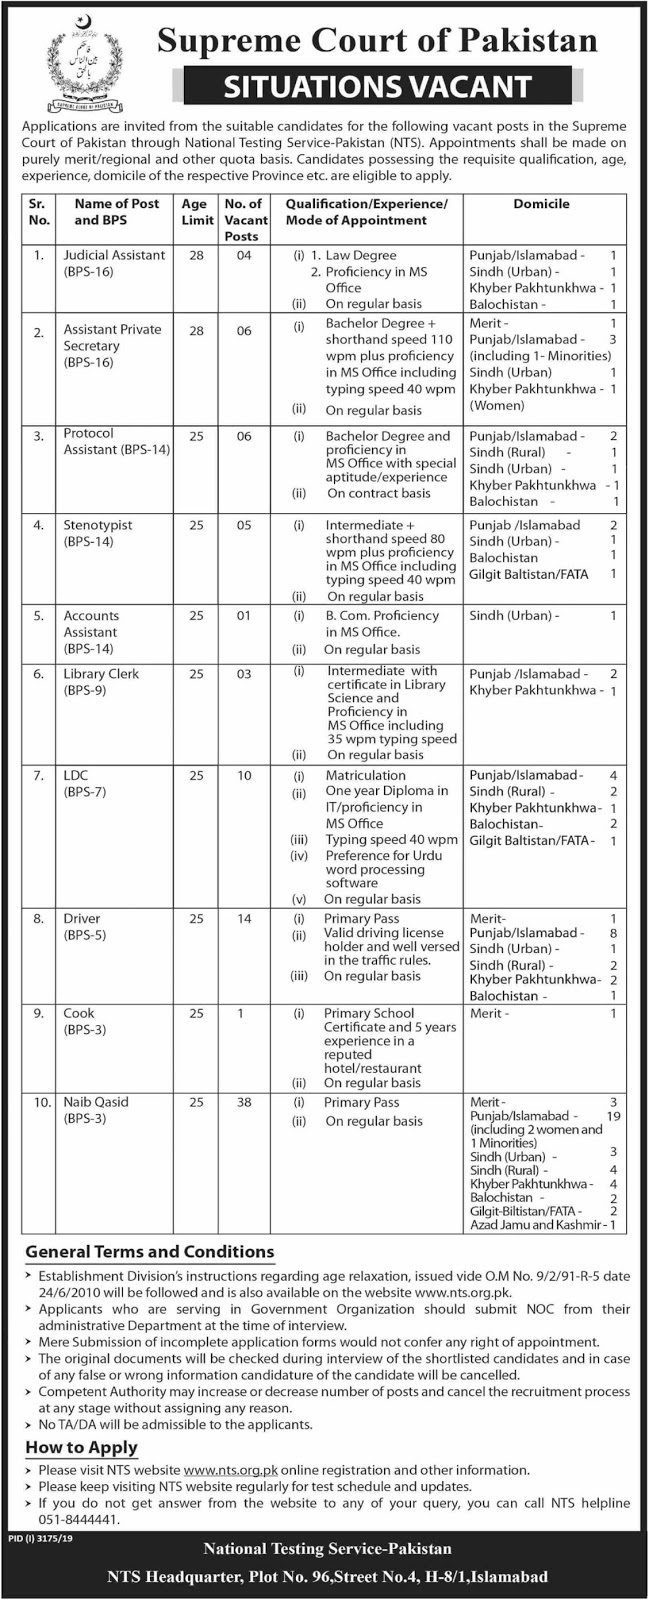 Jobs in Supreme Court of Pakistan 2019 through NTS Online Apply